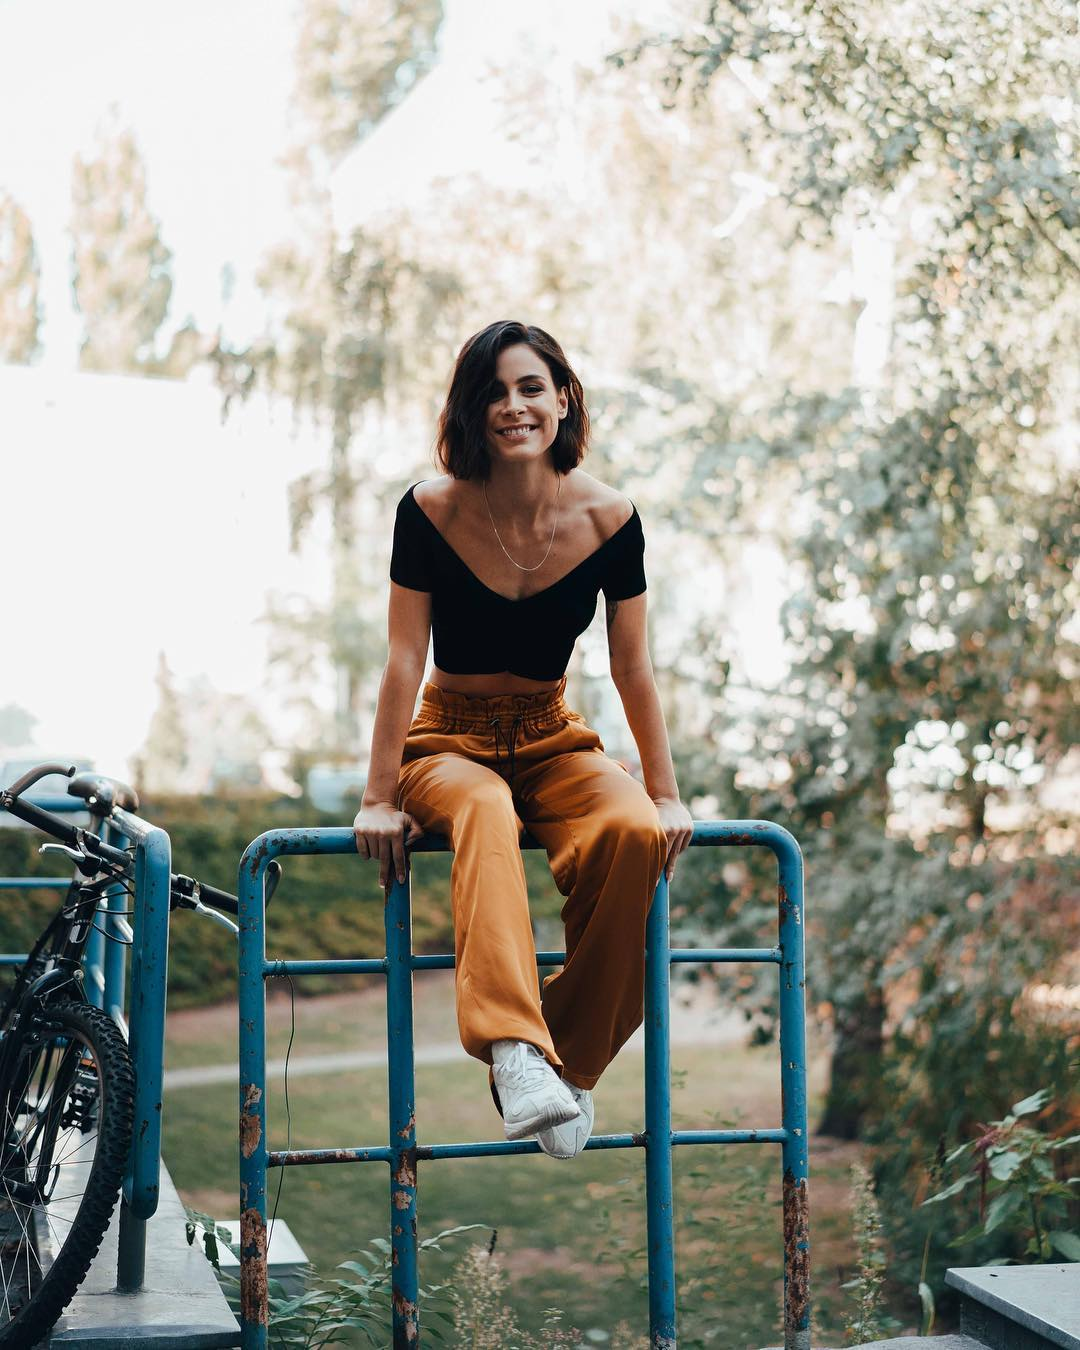 49 Hot Pictures Of Lena Meyer Landrut Are Just Too Yum For